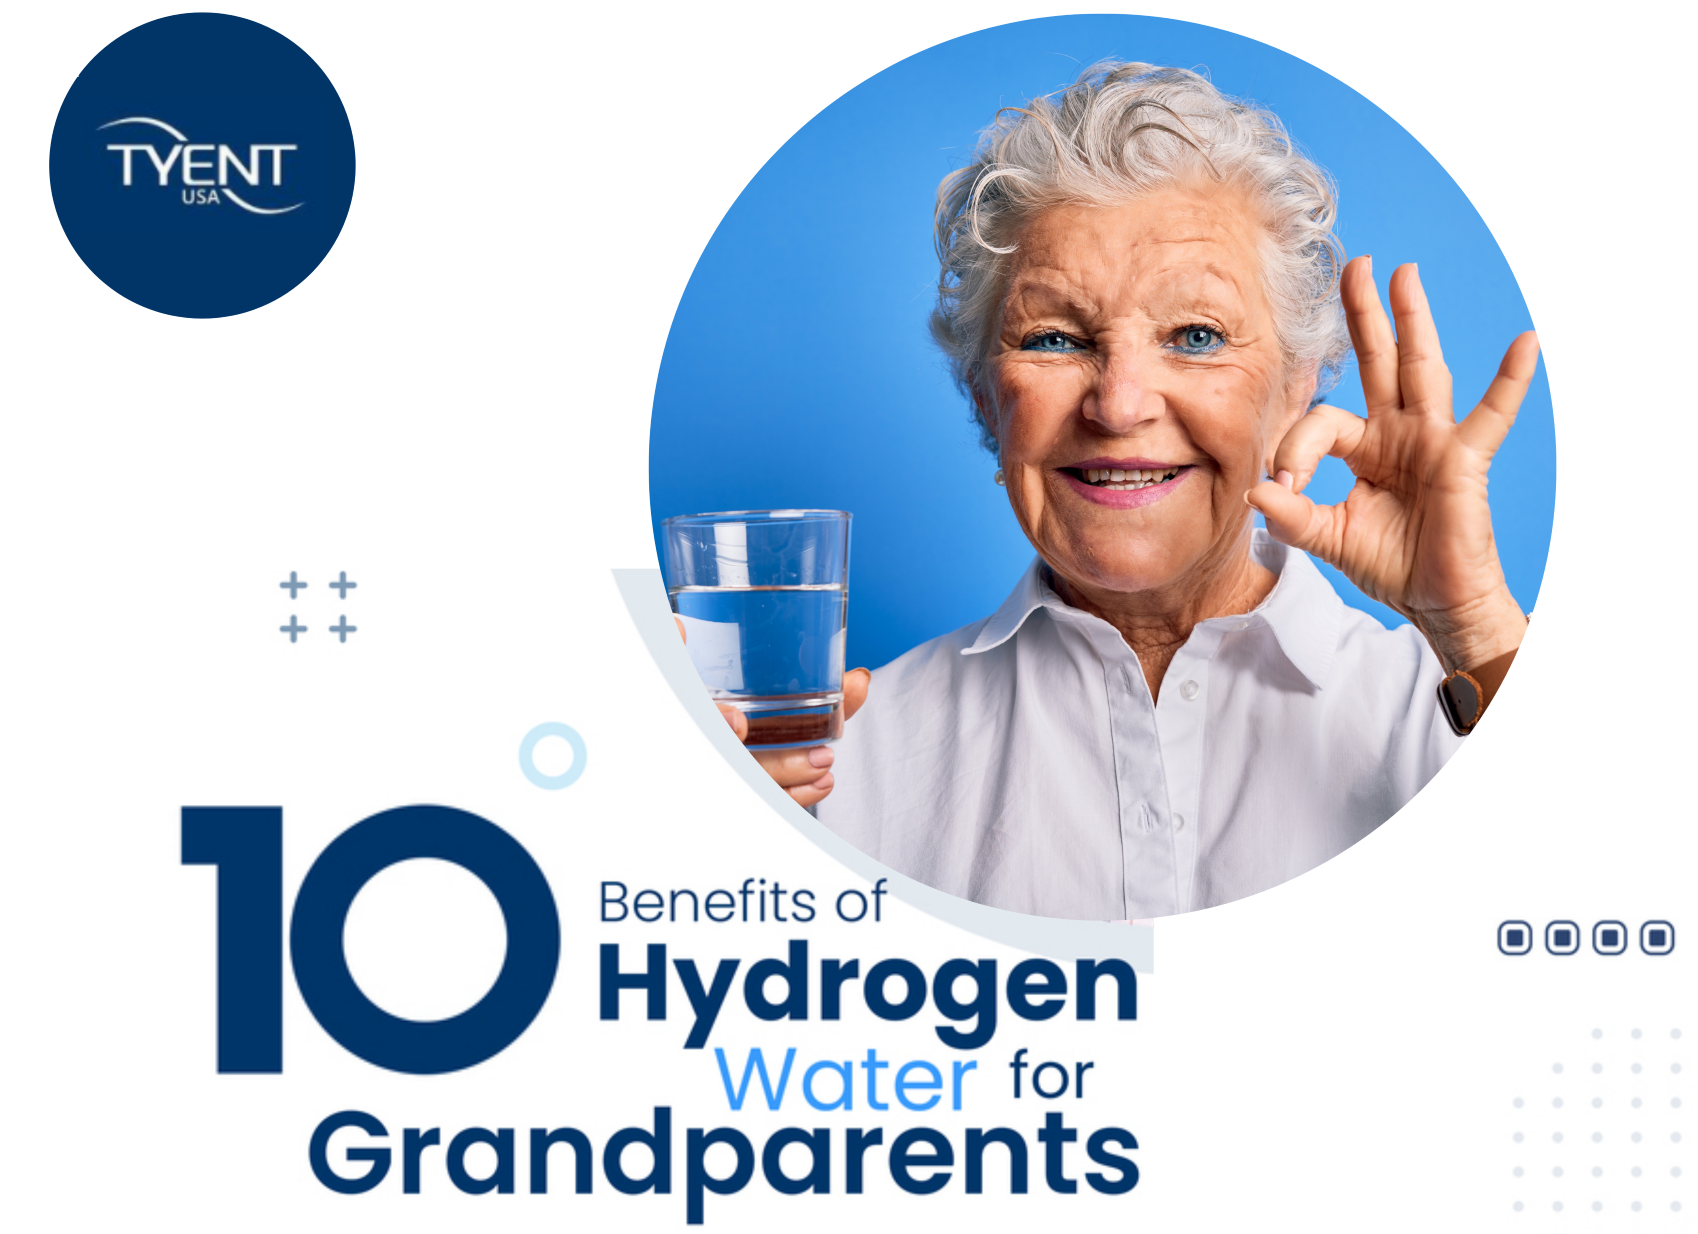 10 Benefits of Hydrogen Water for Grandparents